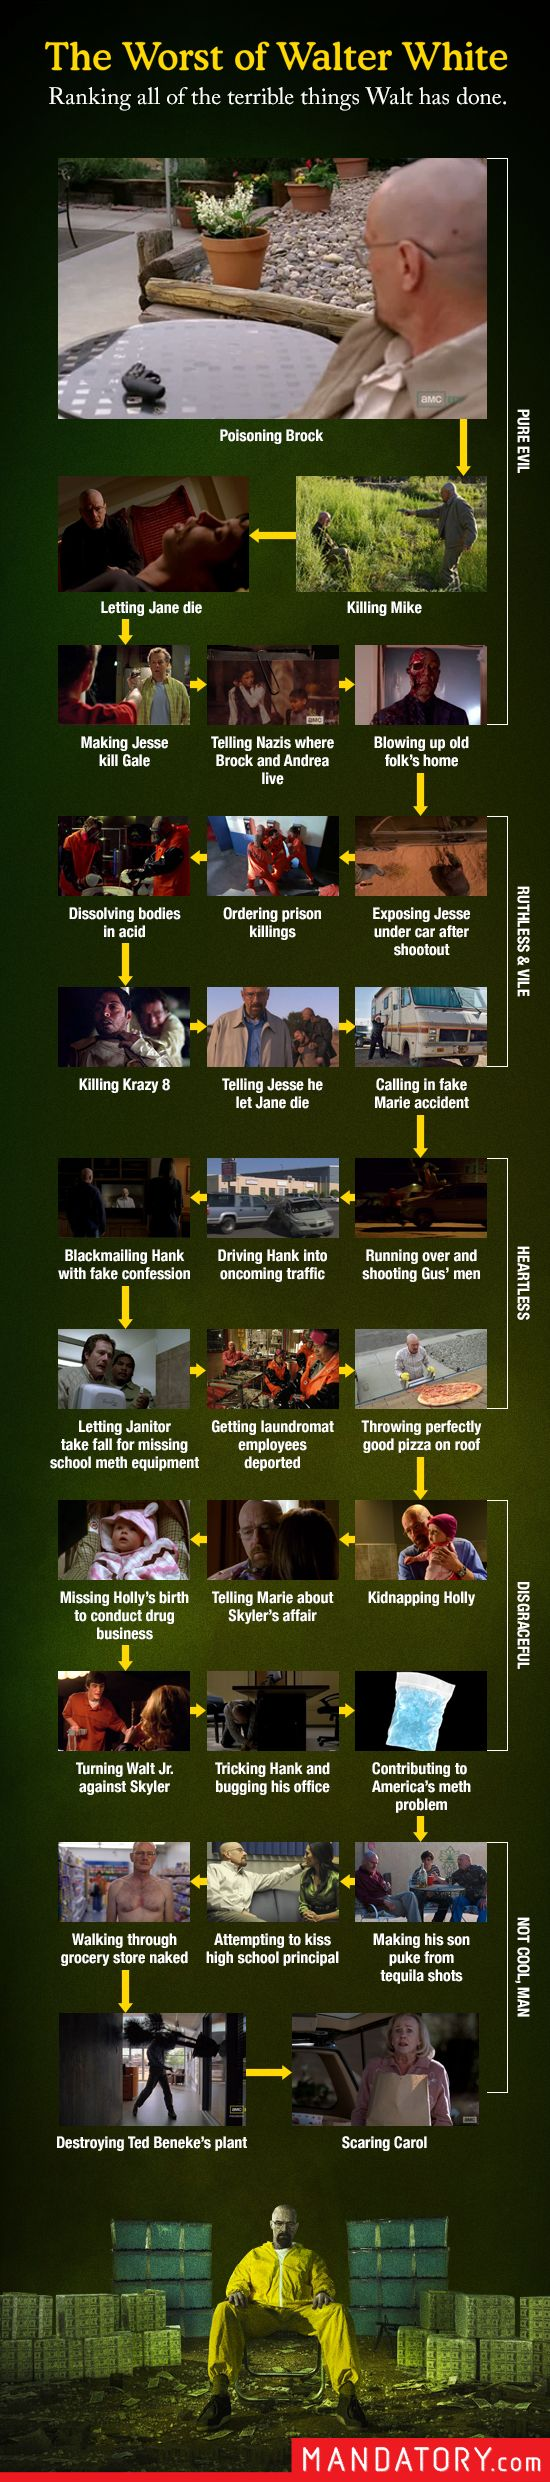 The Worst of Walter White - Not sure if I agree with the order but the list looks pretty comprehensive.